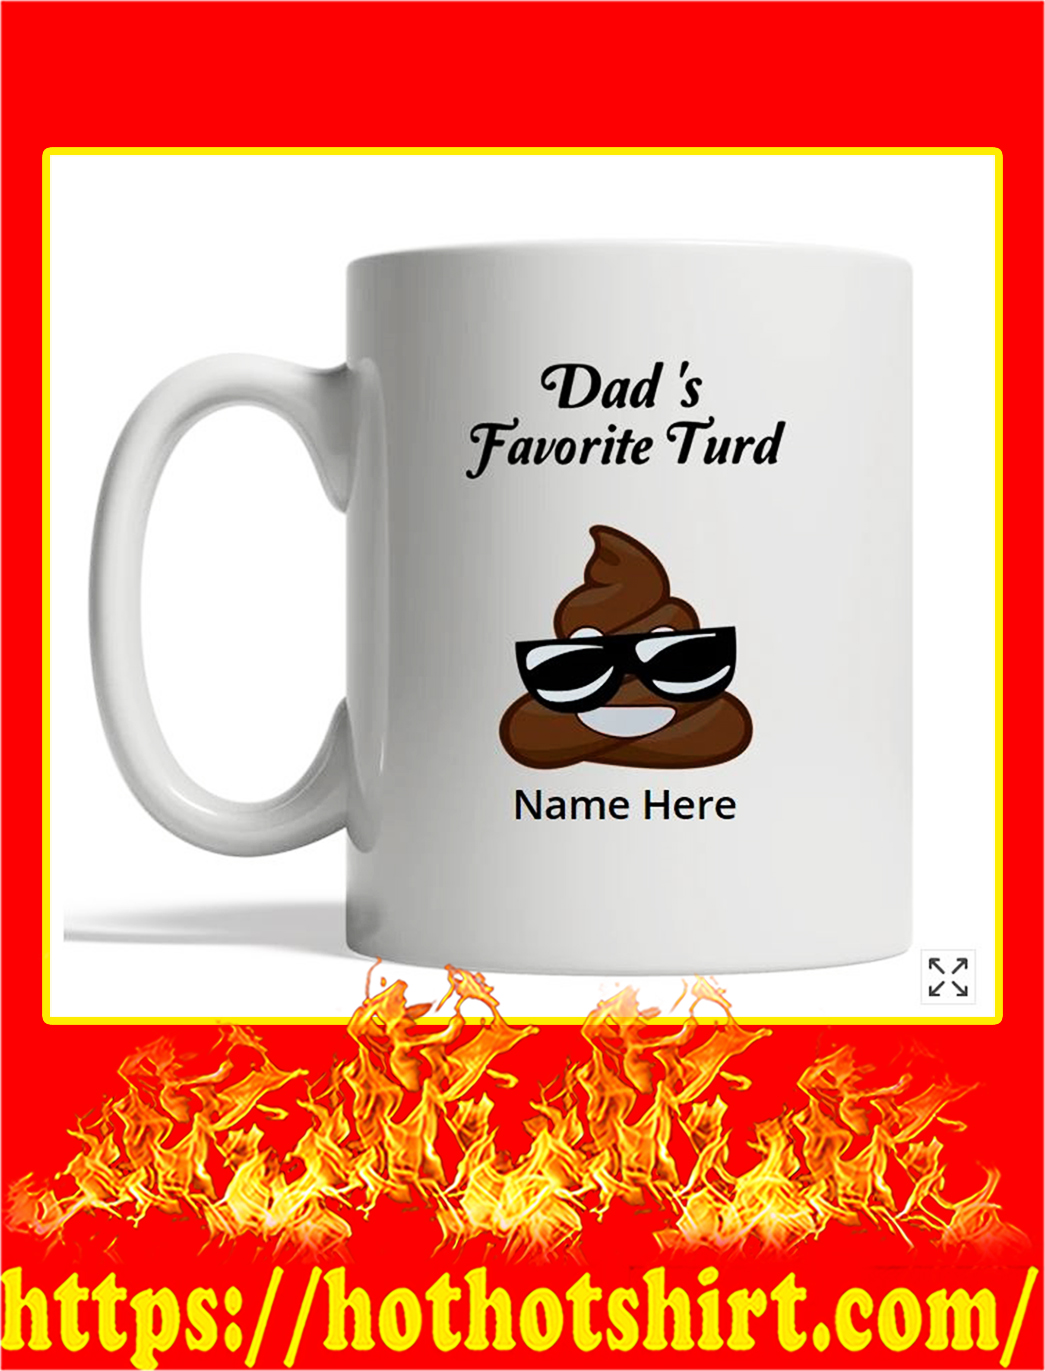 Dad's favorite turd poop custom name mug - white